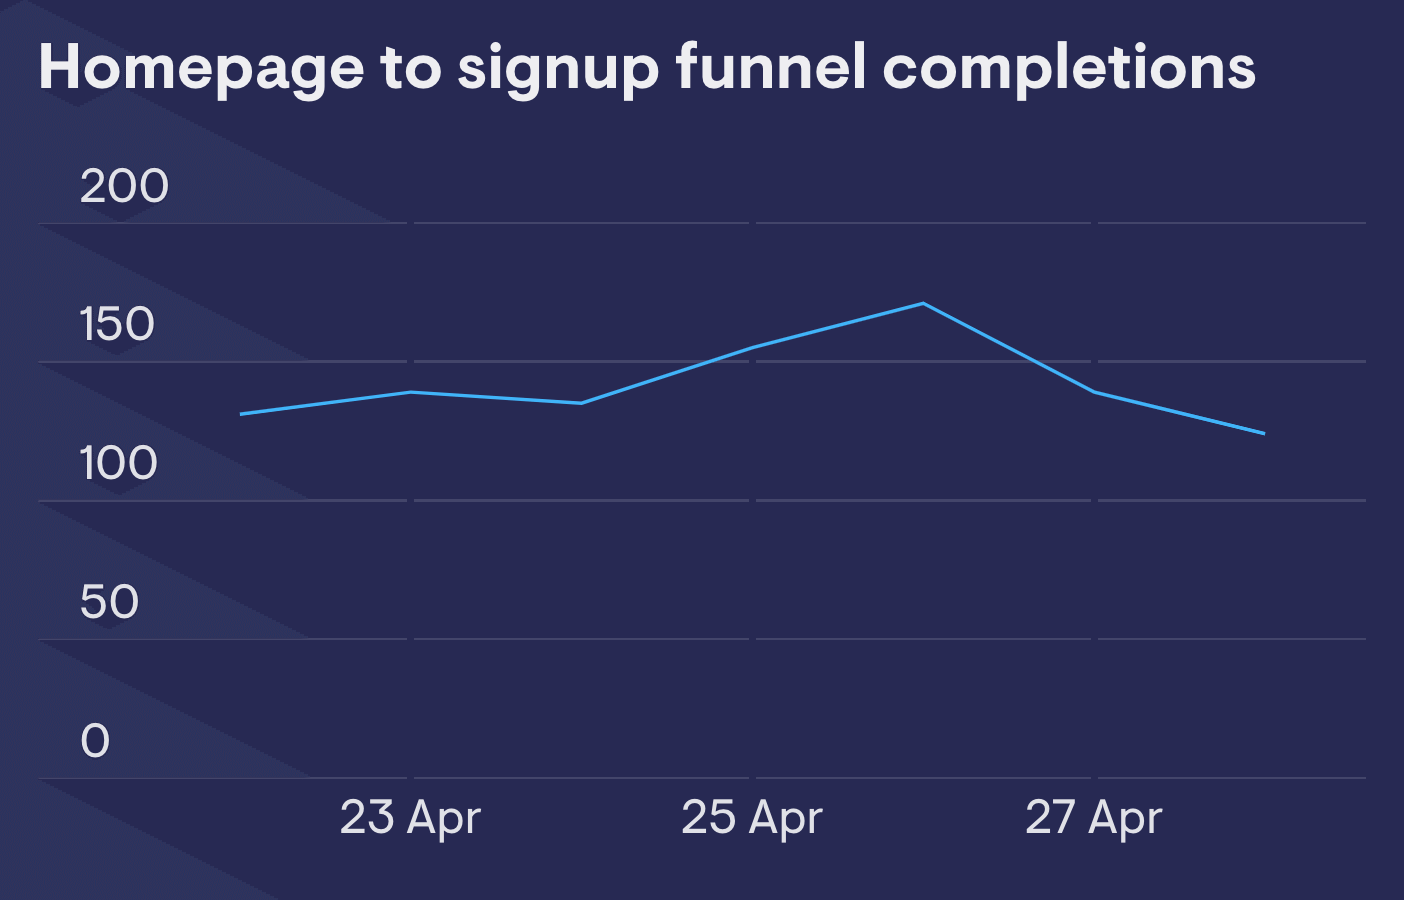 Funnel step completions